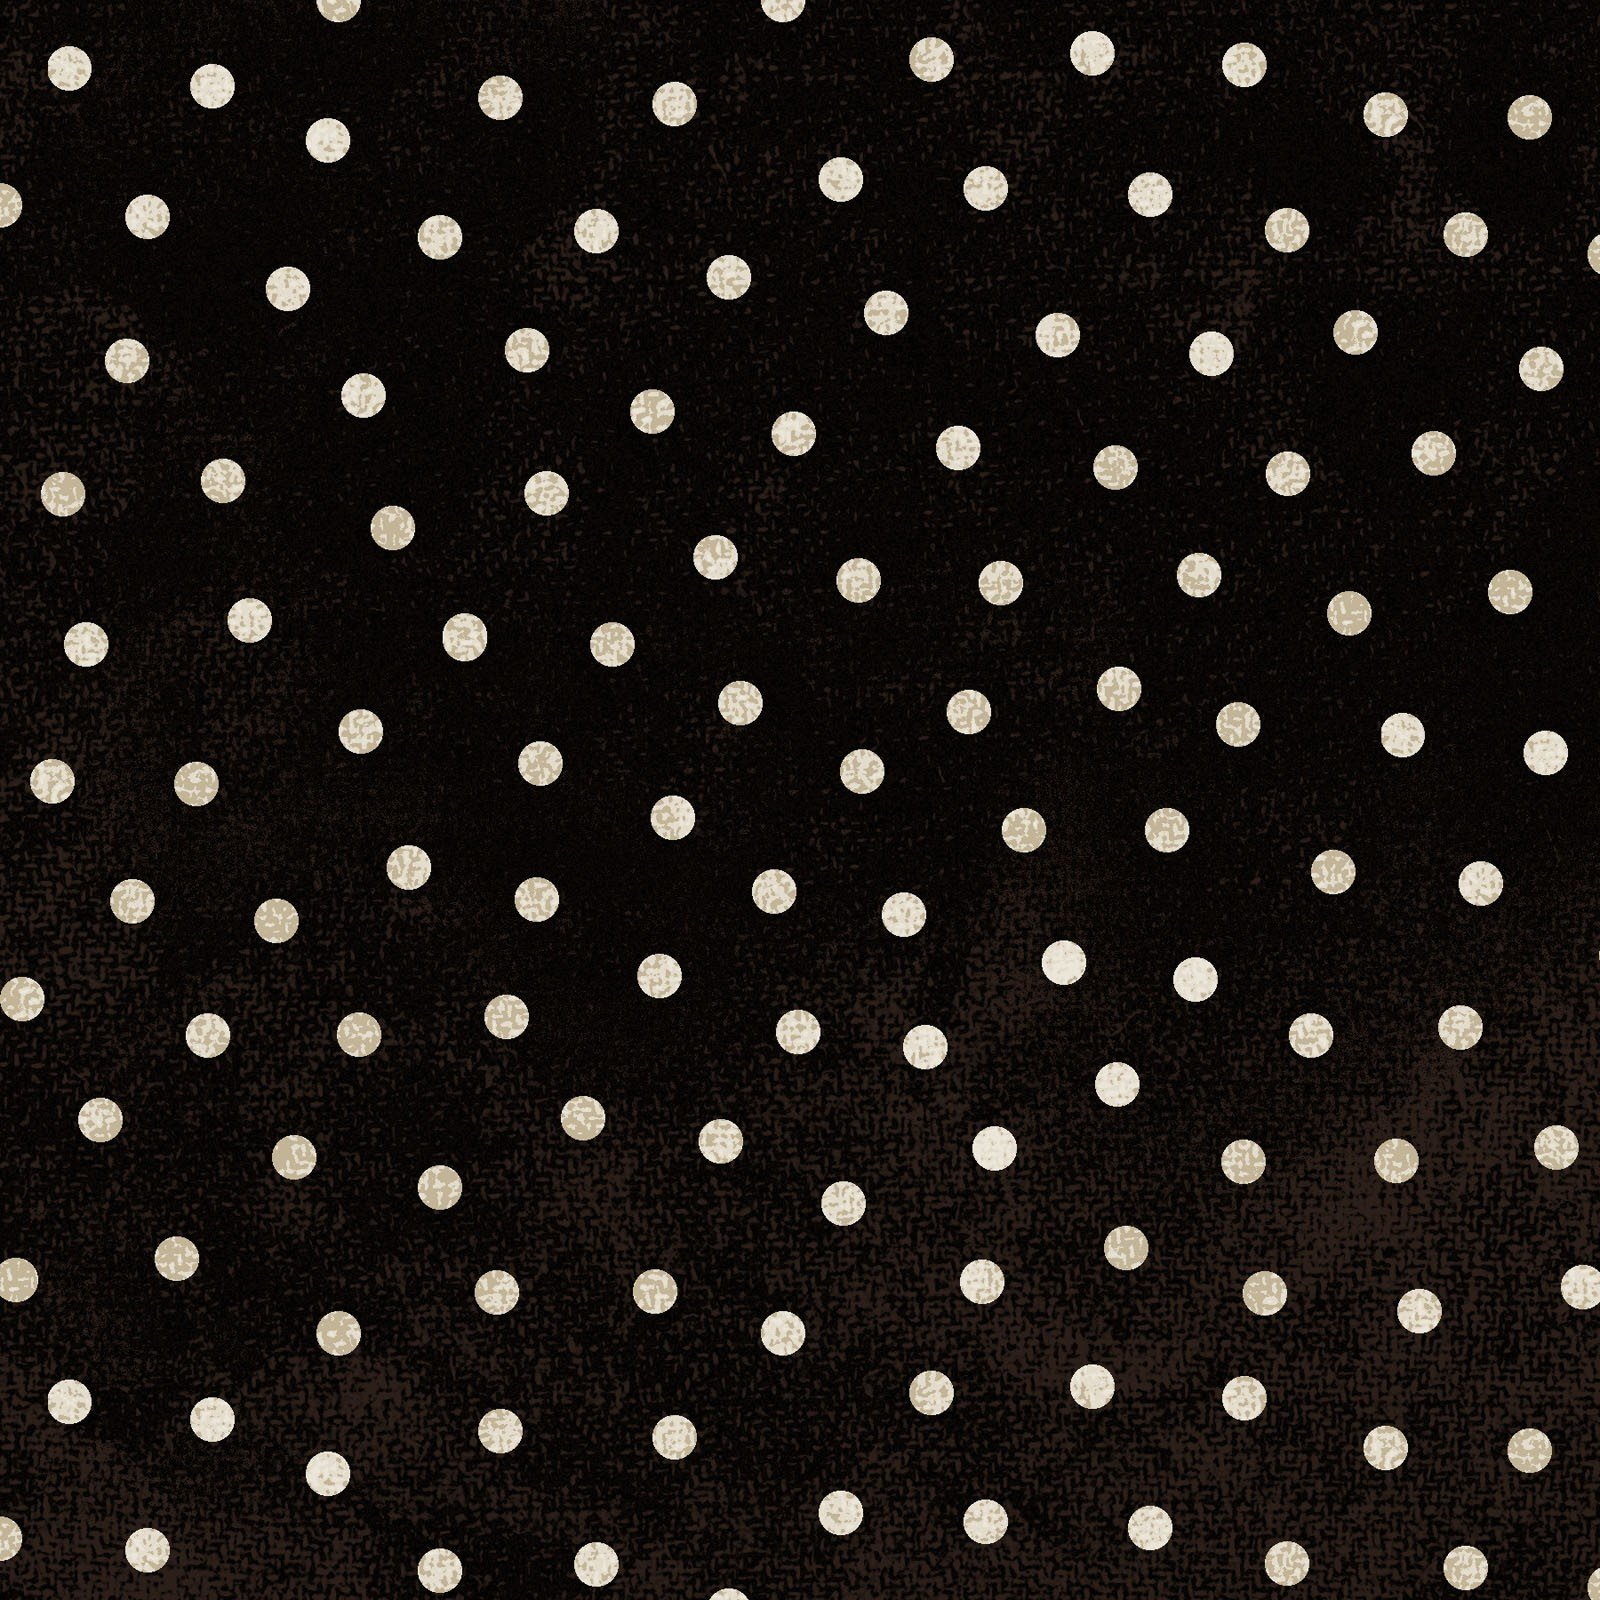 Woolies Flannel Polka Dots Black & Cream (MASF18506-J)